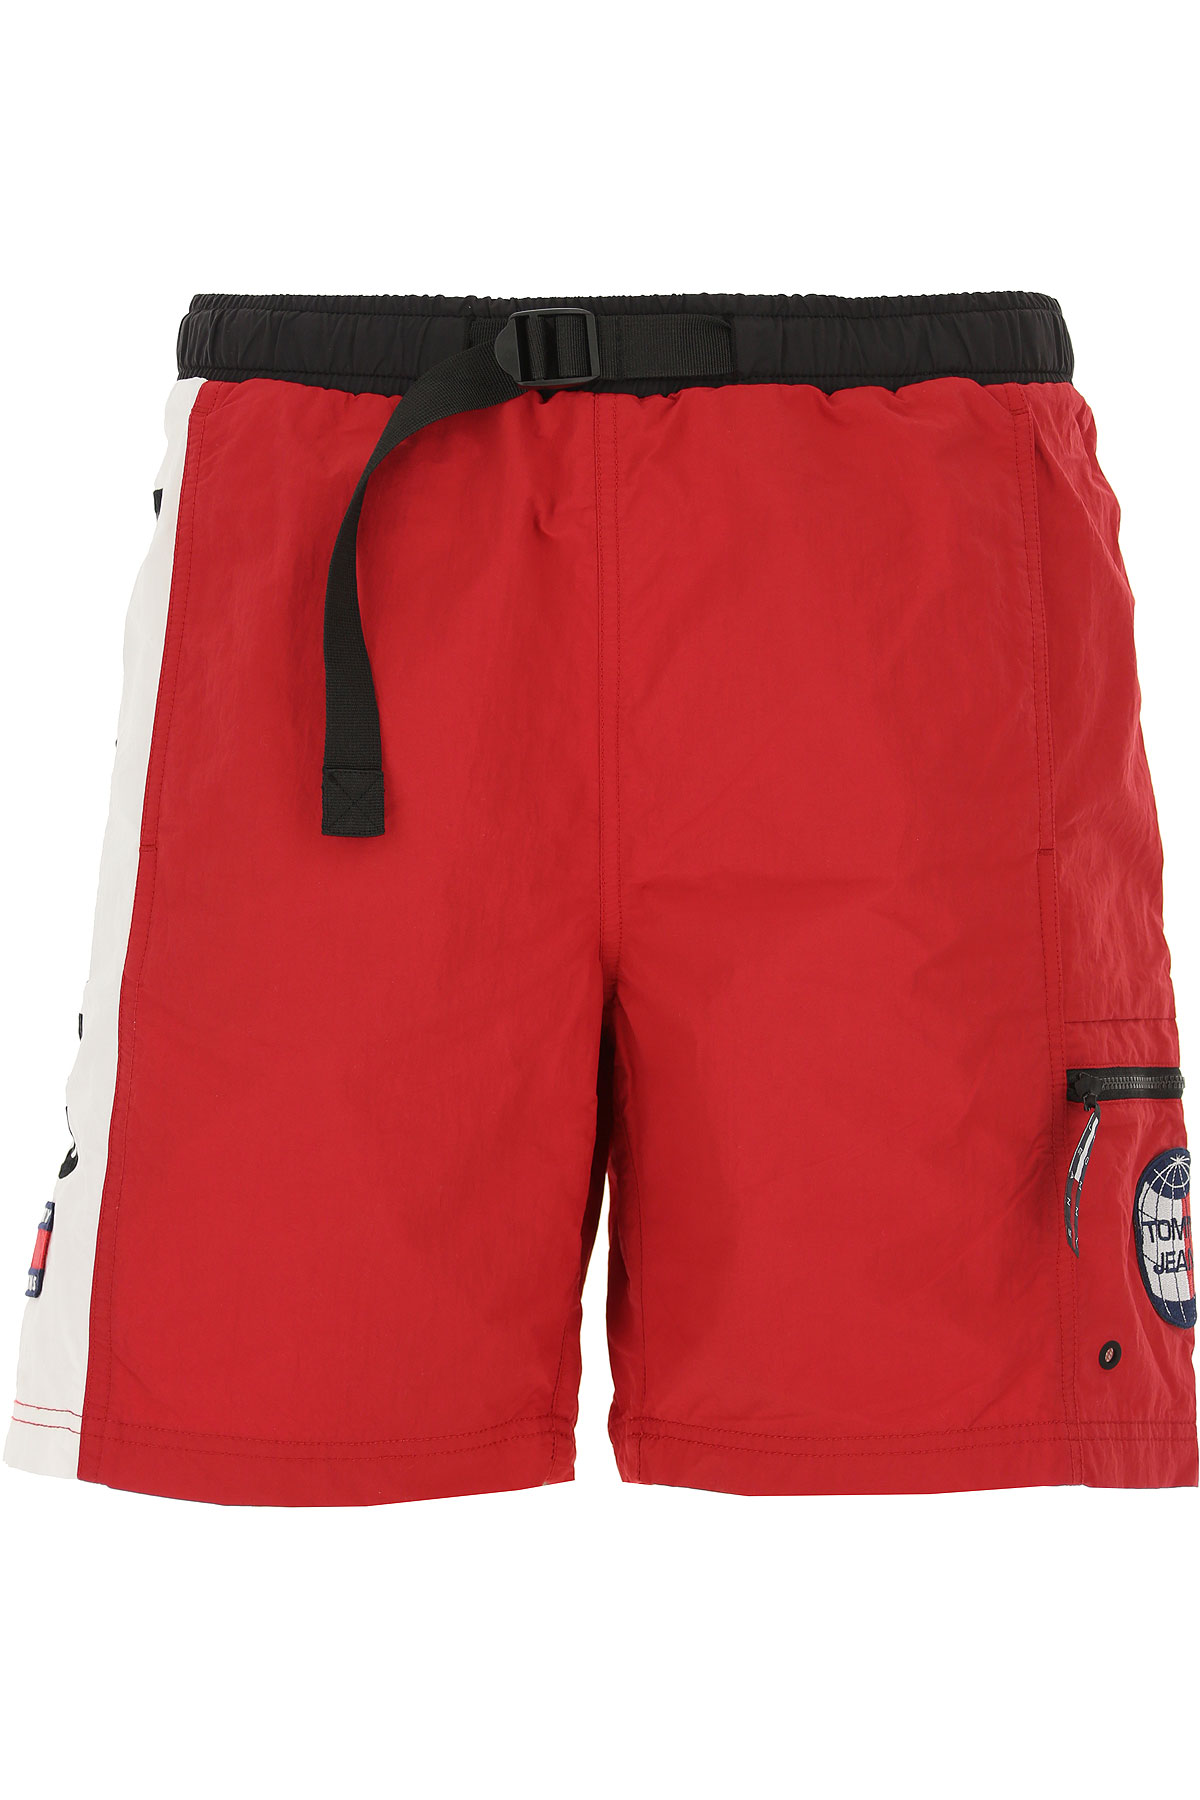 Tommy Hilfiger Mens Clothing, Cherry Red, polyamide, 2019, S XS